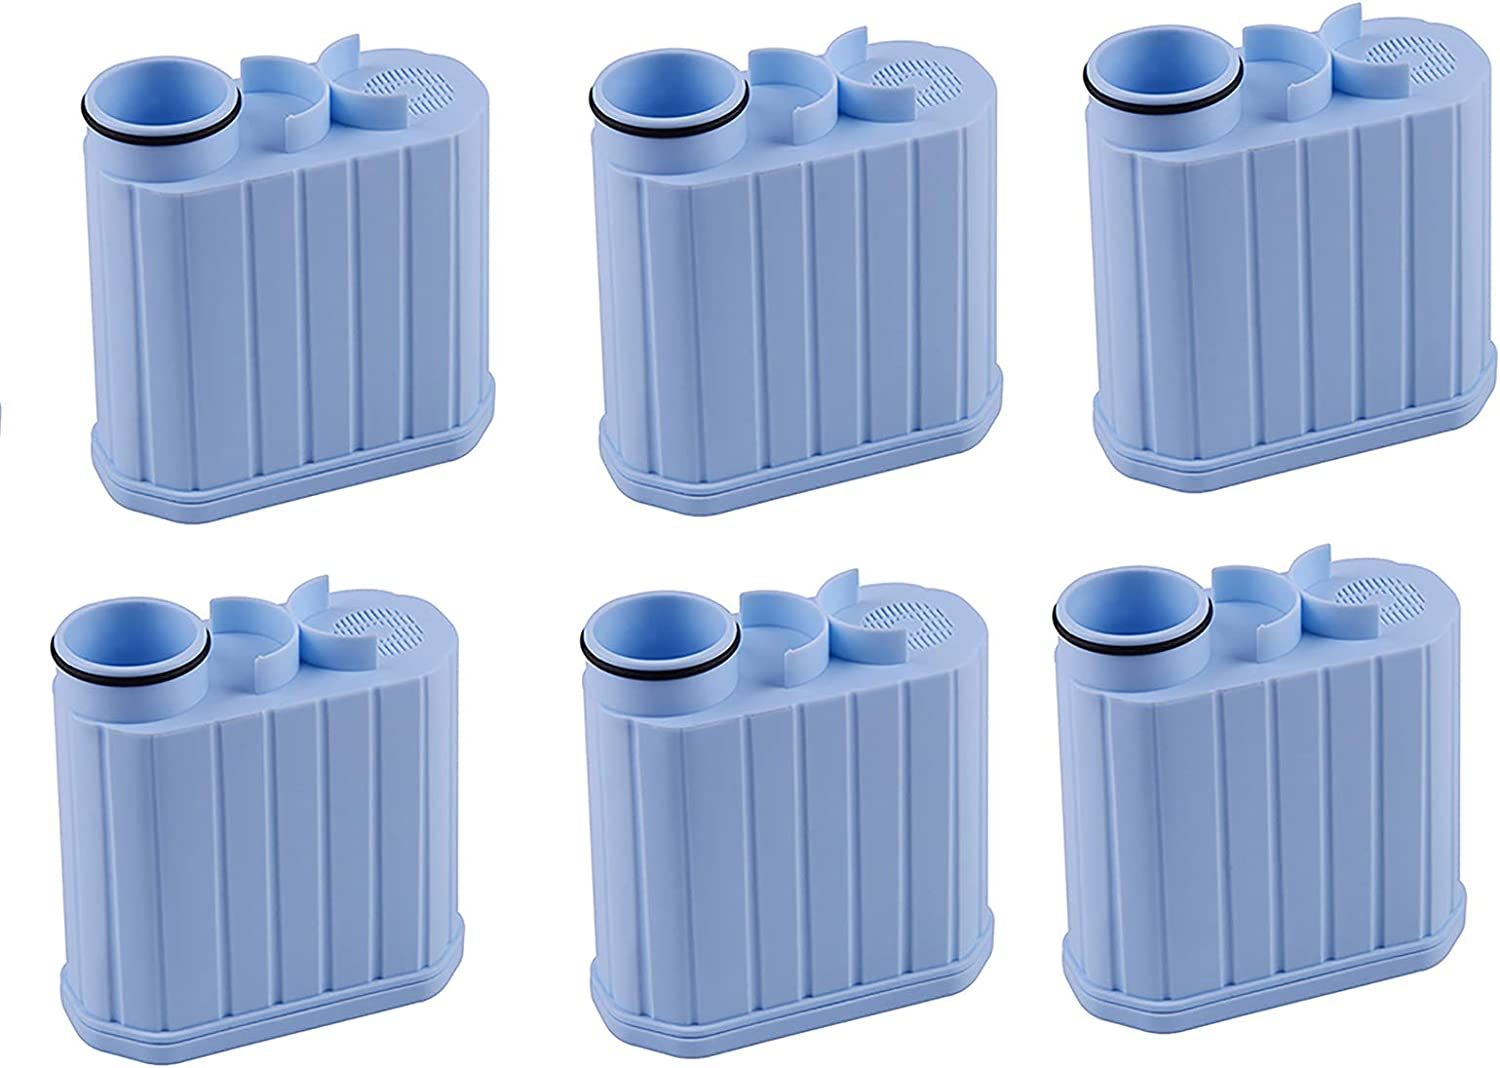 fits also CA6903 3x Water filter cartridges for Saeco INCANTO HD8917//09